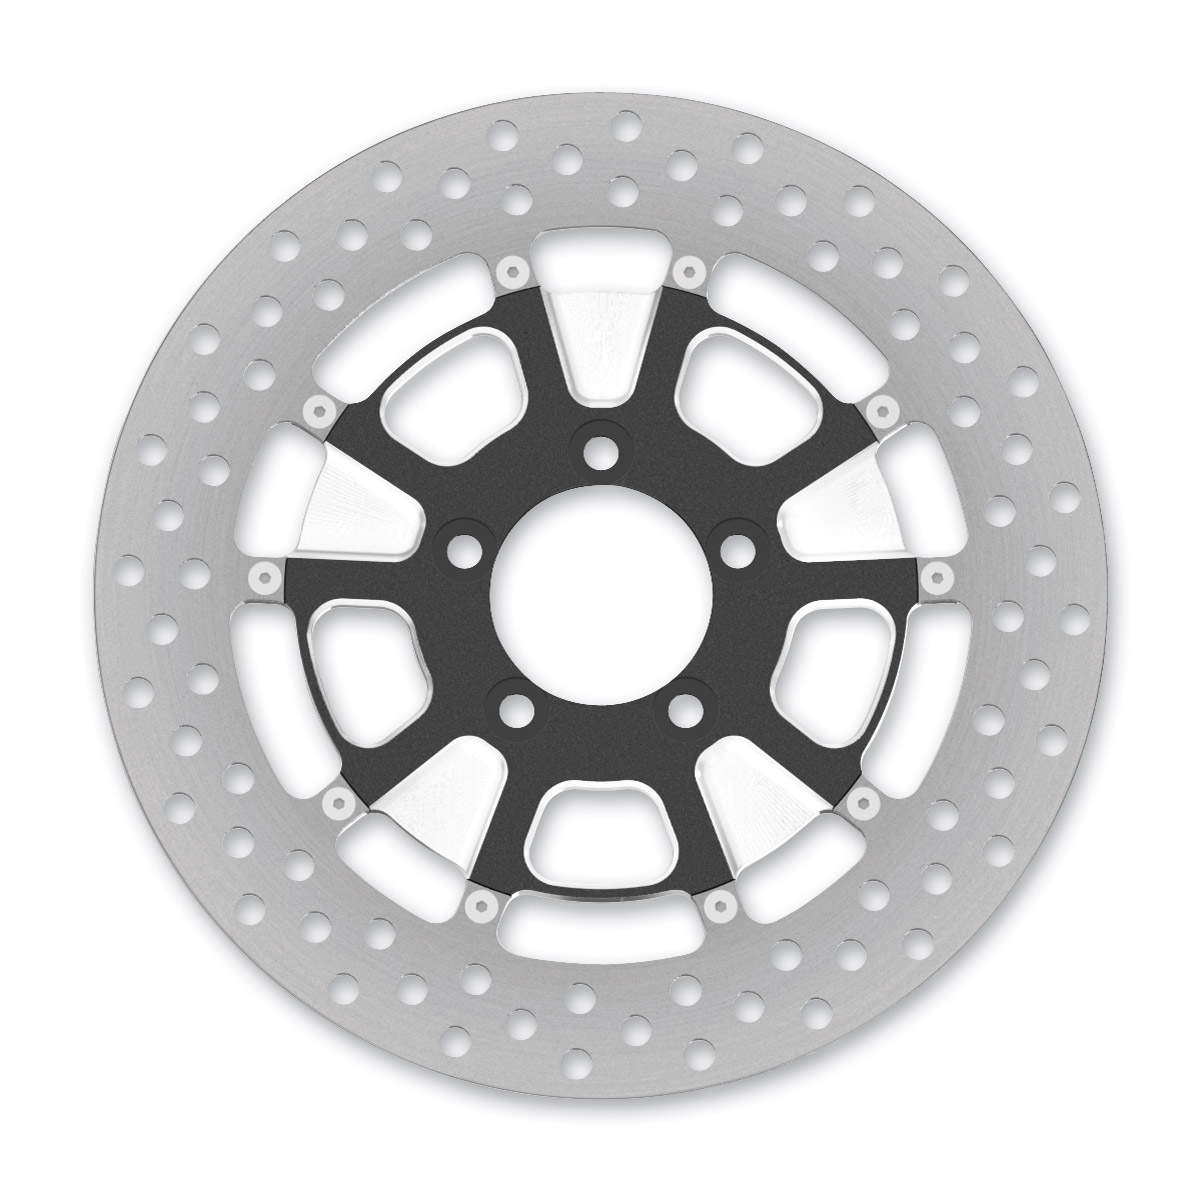 Roland Sands Design Raid Contrast Cut Ops Two-Piece Rear Brake Rotor, 11.8